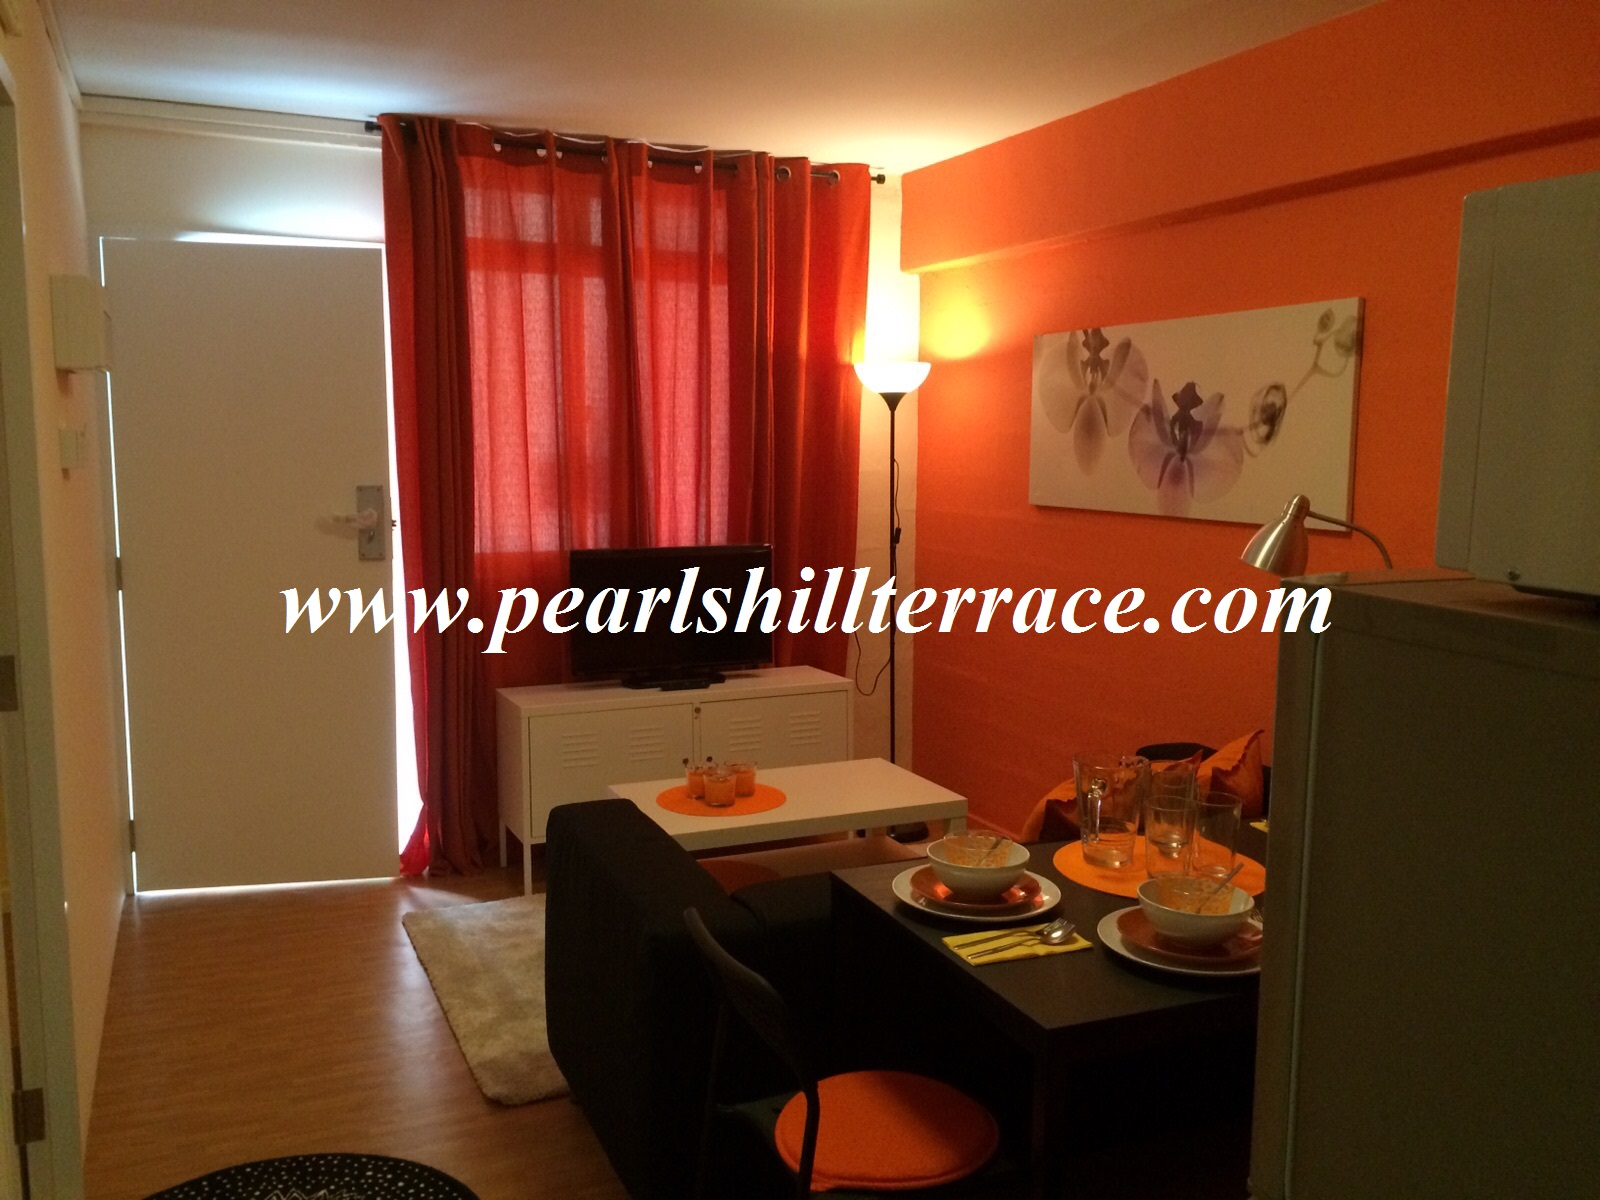 Pearl's Hill Terrace Living & Dining